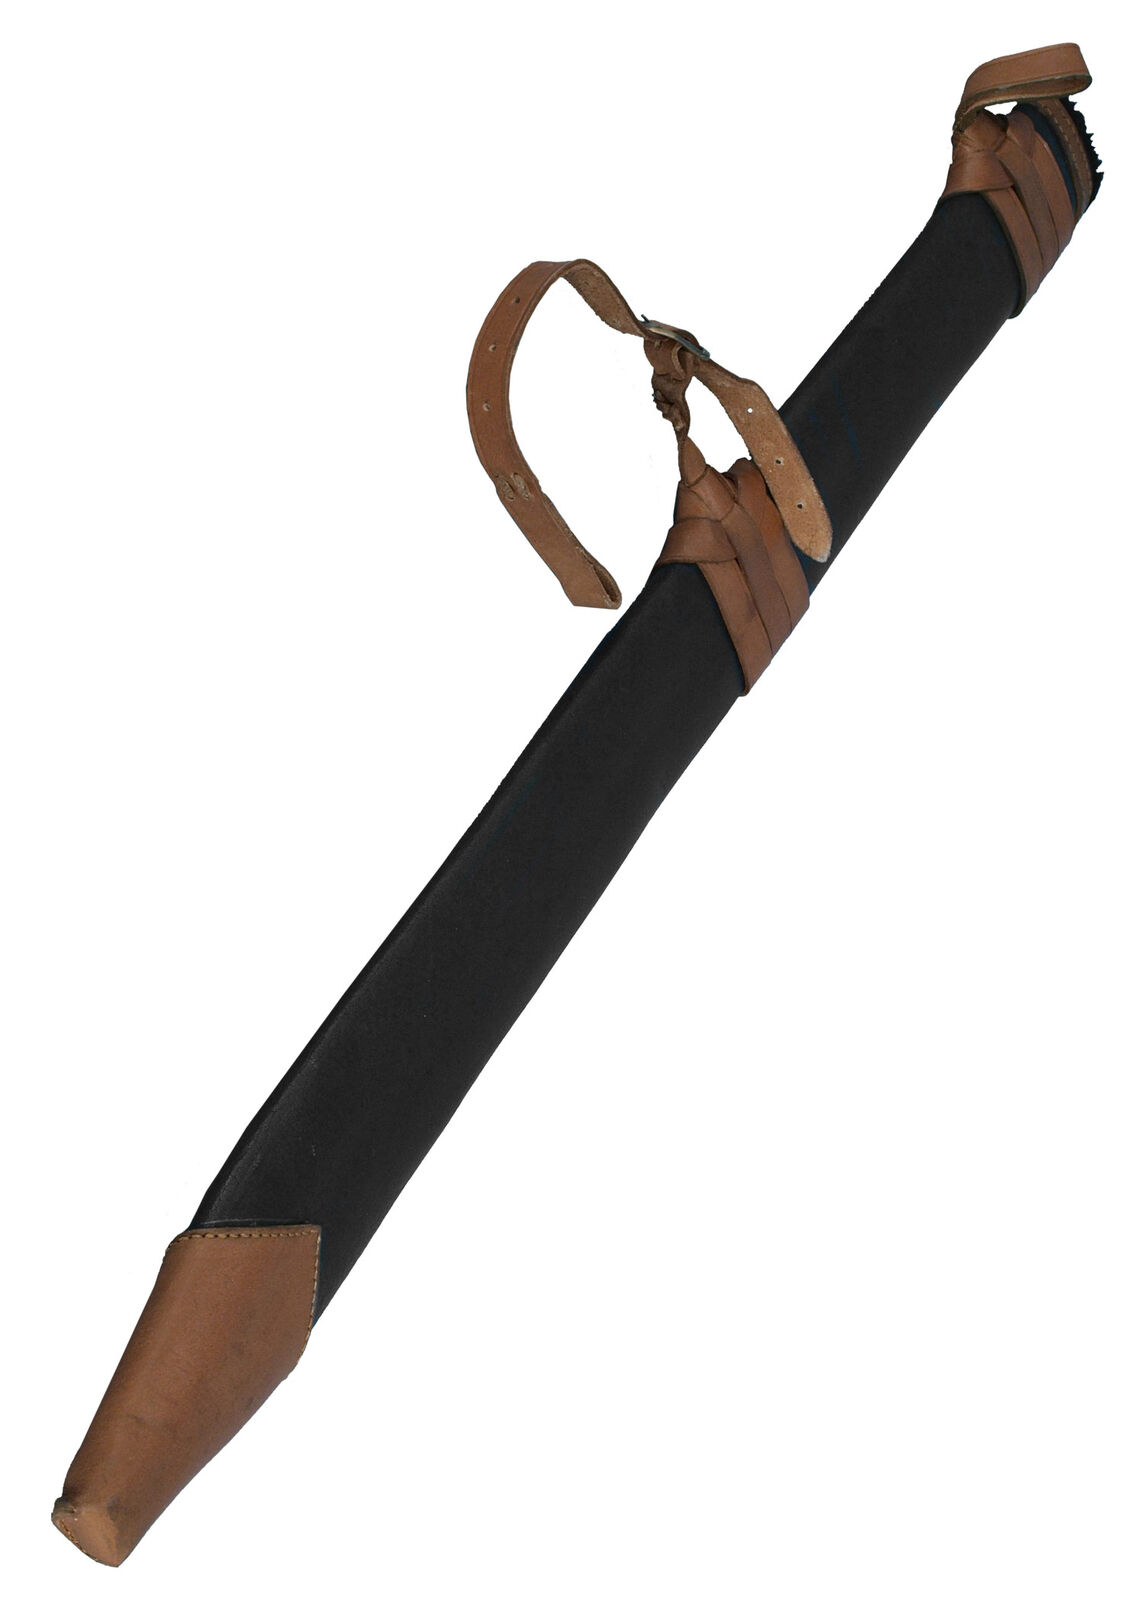 Leather scabbard, large, left-handed, medieval LARP SCA cosplay costume gear kit